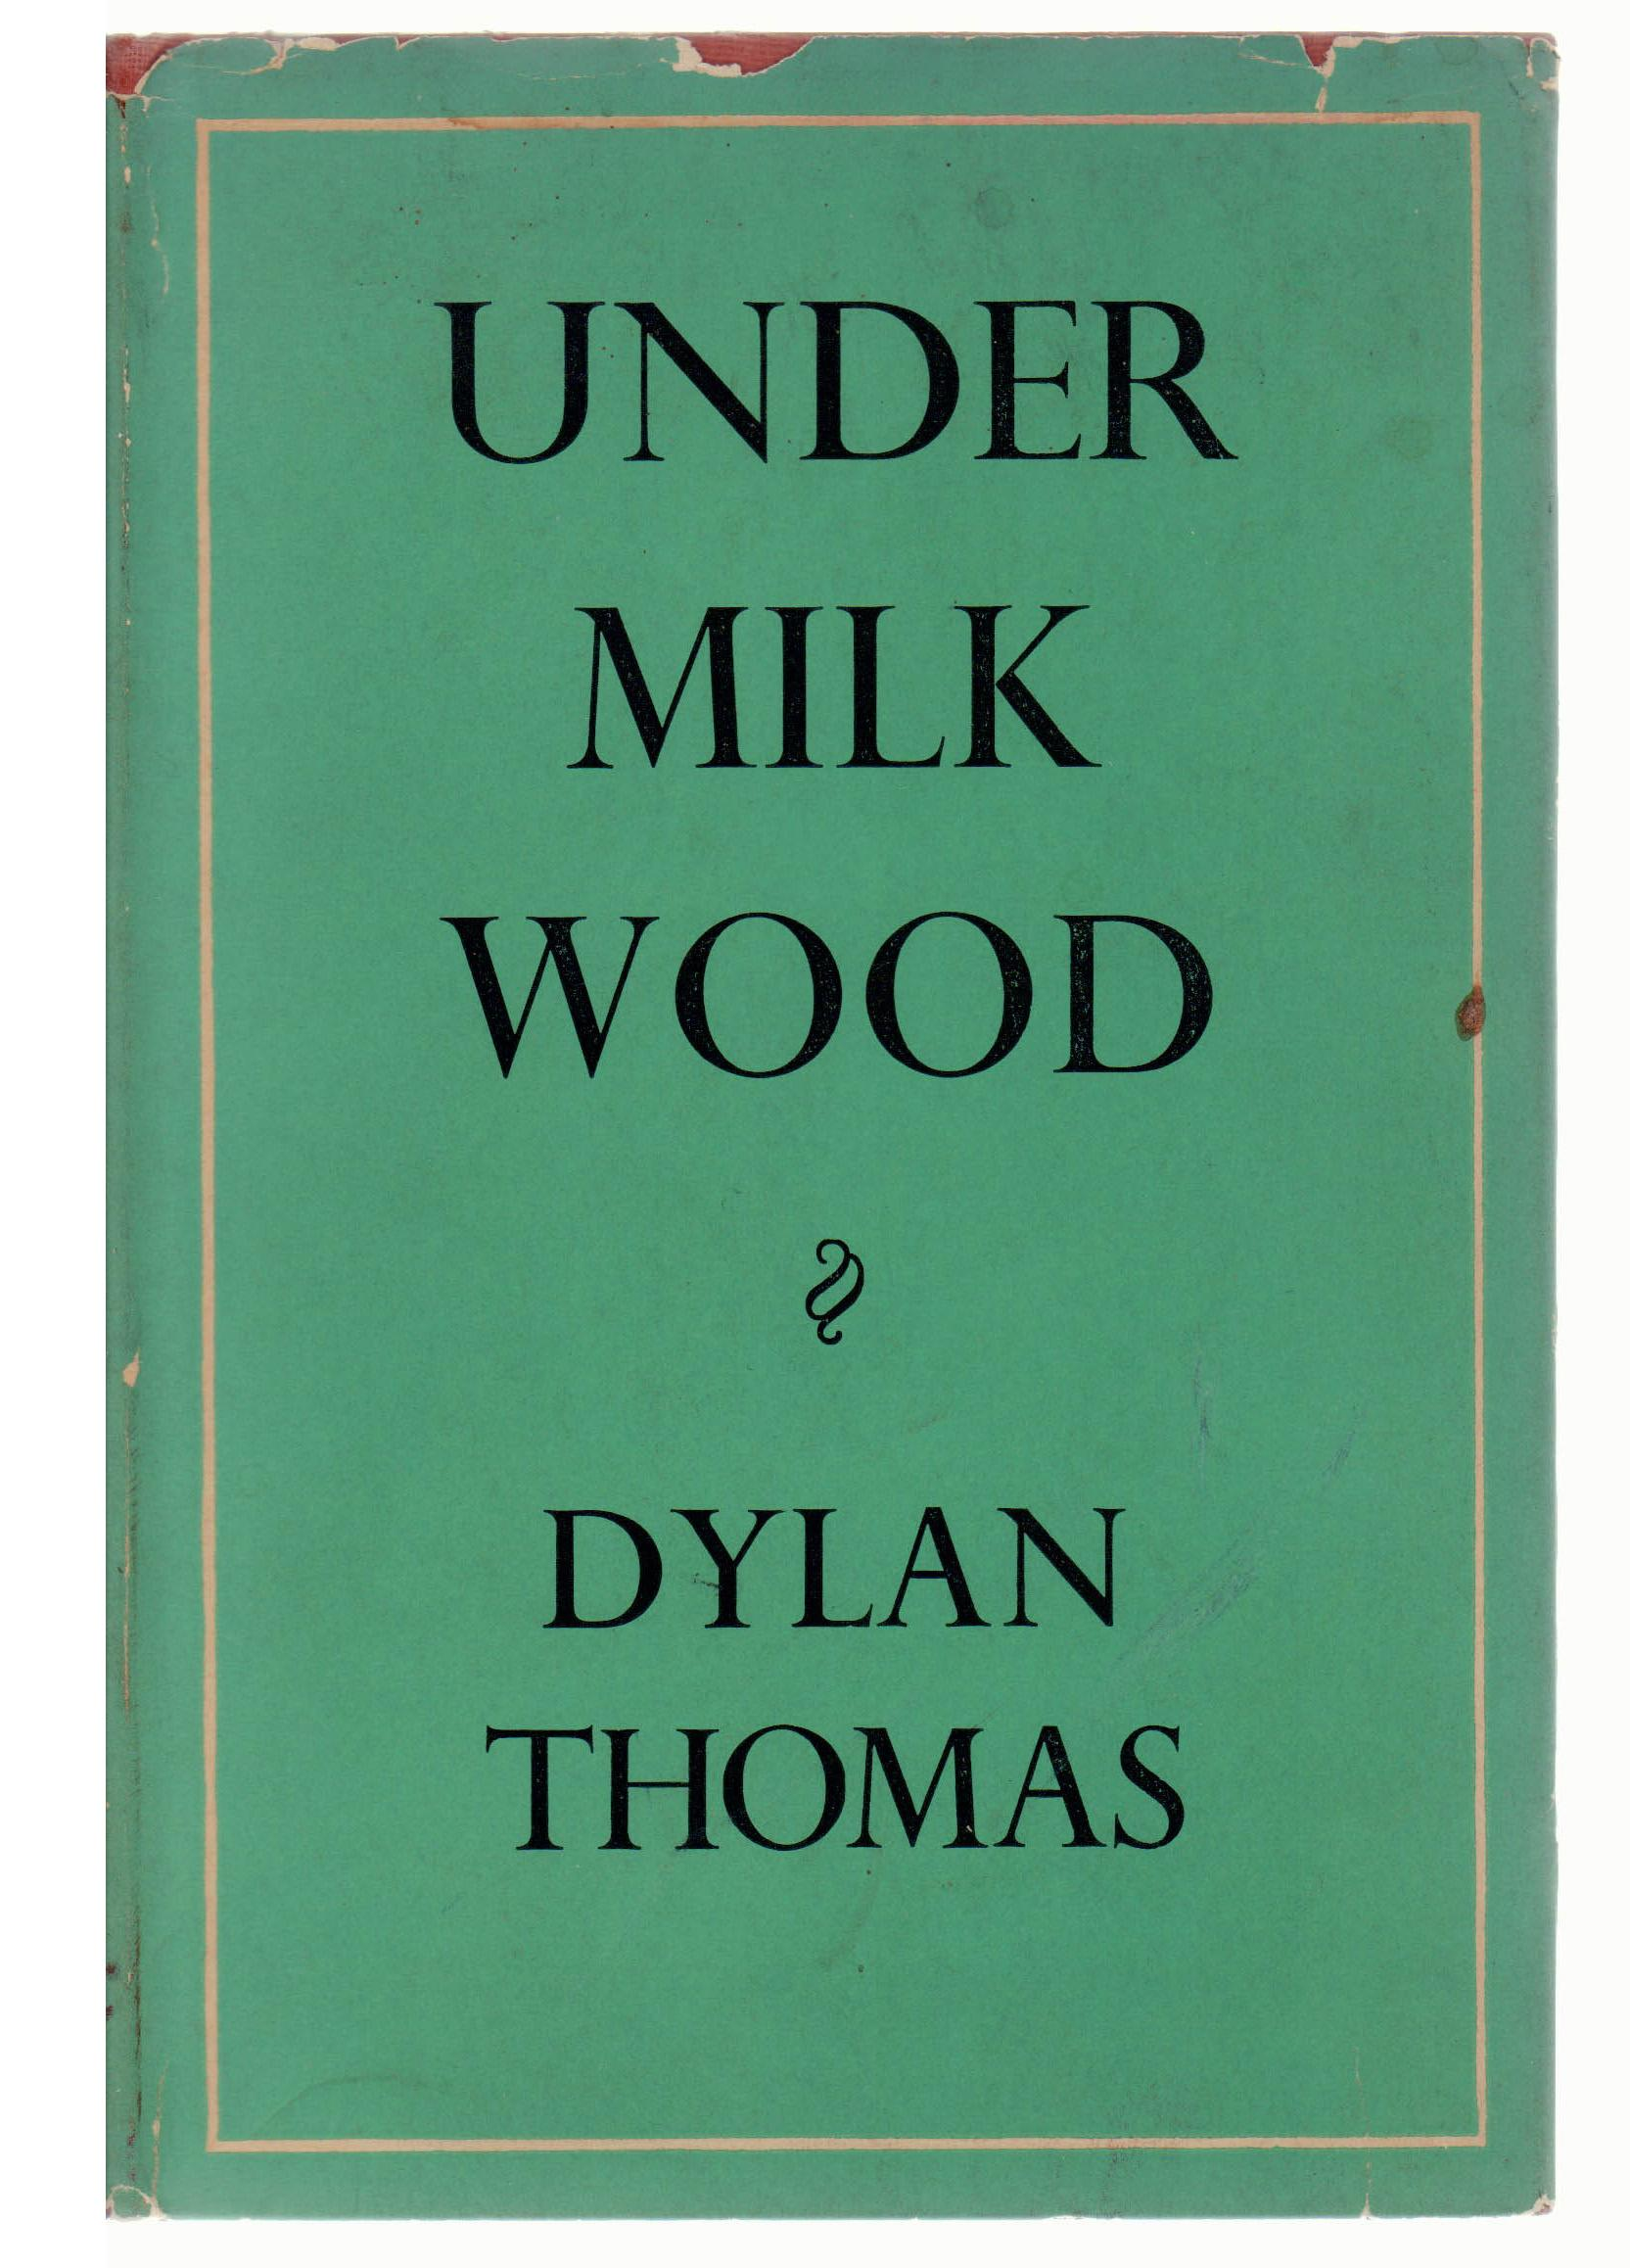 under milk wood essay 3 Under milk wood (welsh version: dan y wenallt) is a 2015 welsh drama film based on under milk wood by dylan thomasit is adapted and directed by kevin allenthe narrator is rhys ifansthe film was selected as the british entry for the best foreign language film at the 88th academy awards but not nominated.